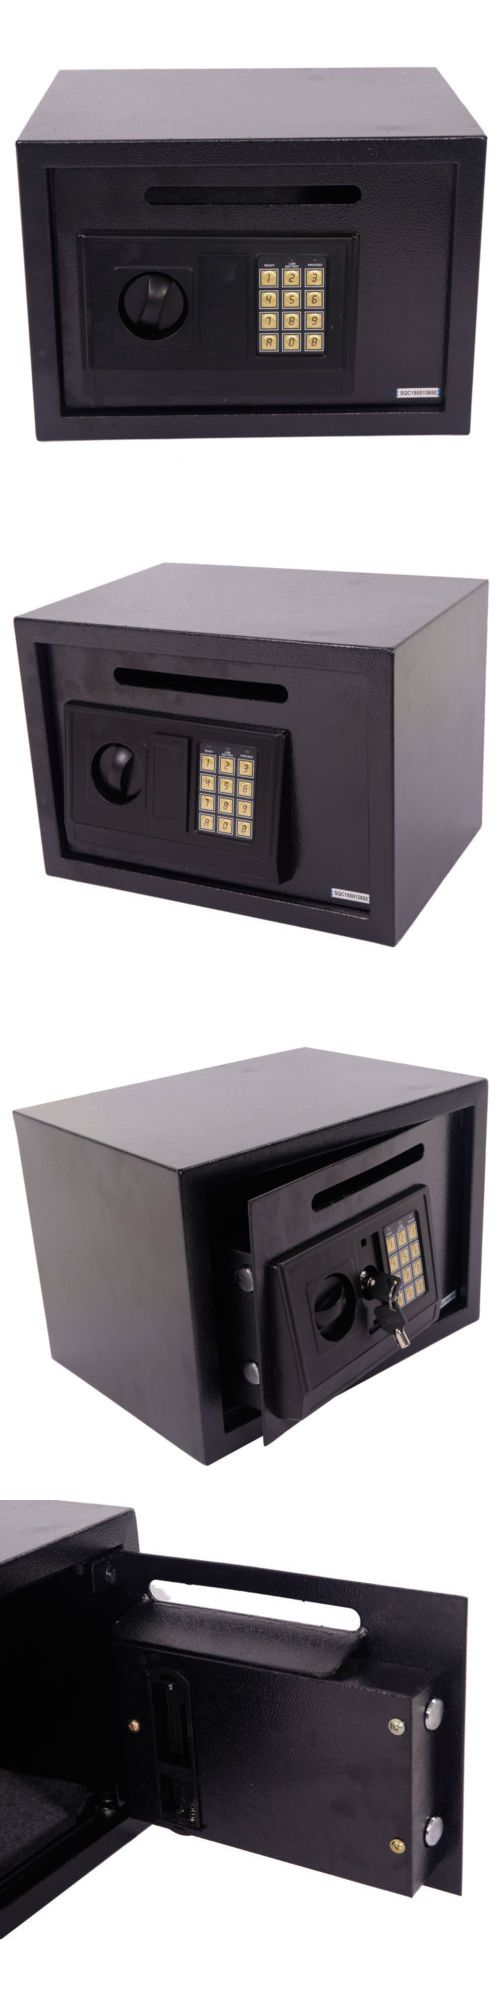 Other Home Security 20589: New Design Safe Boxs Digital Depository Cash Slot Drop Off Retail Security Vault -> BUY IT NOW ONLY: $38.99 on eBay!